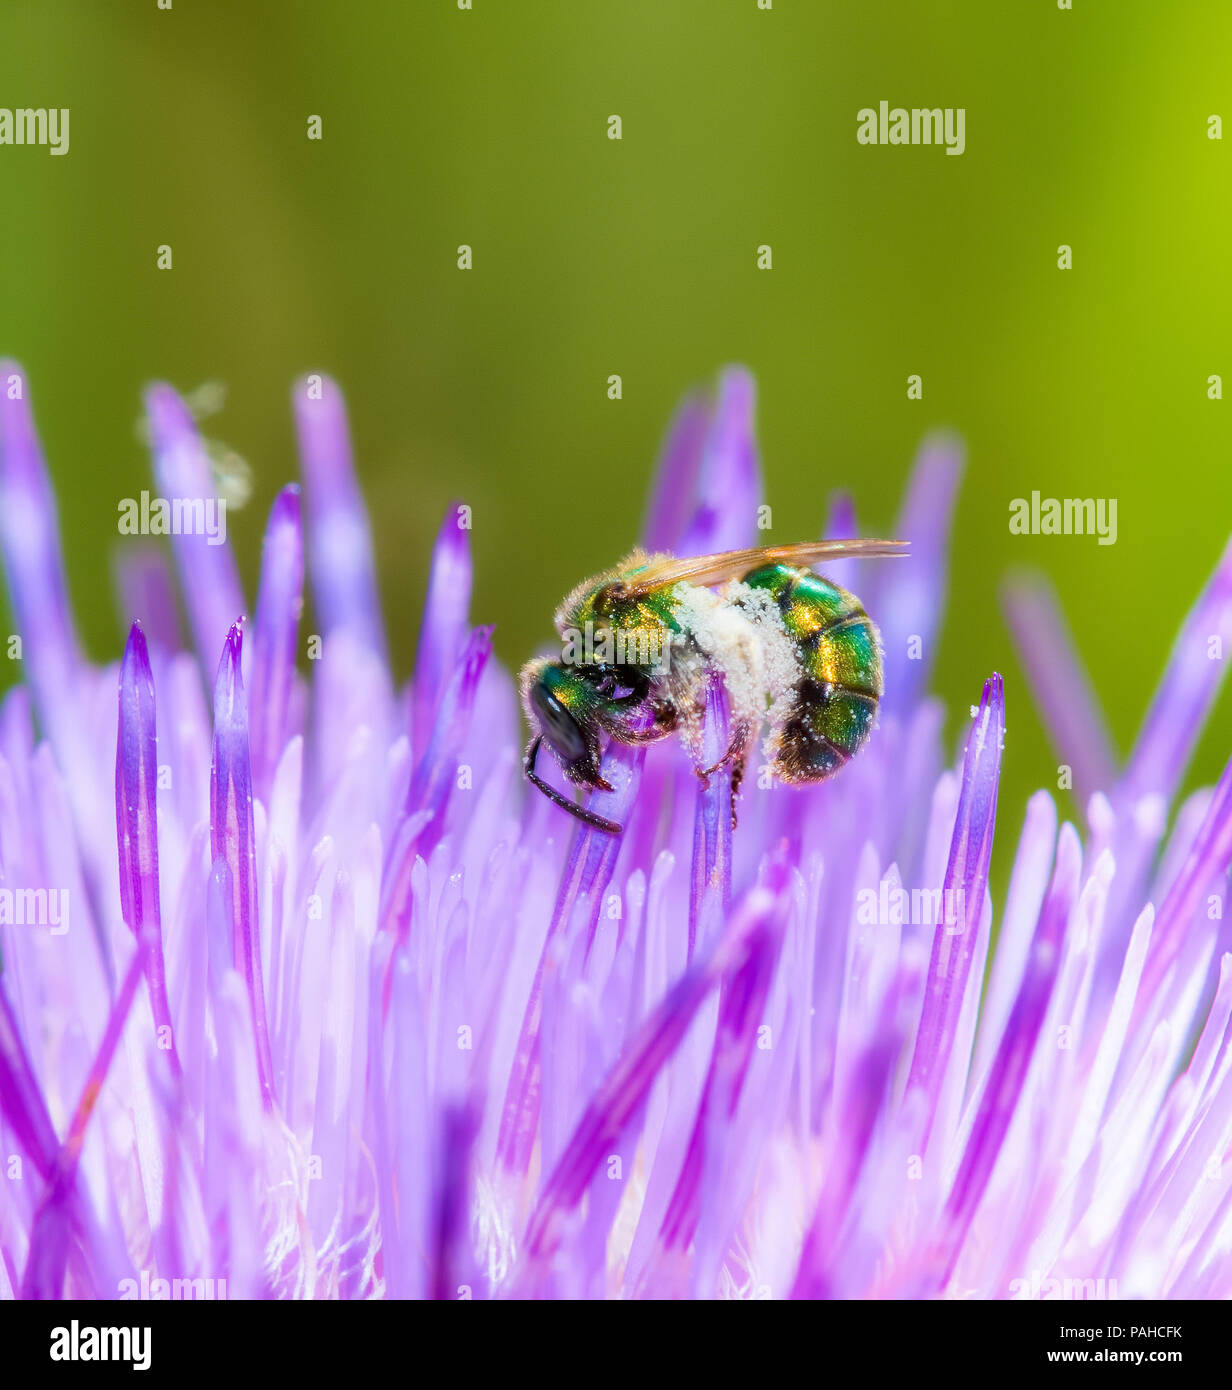 Macro of a Sweat Bee (Halictidae) Collecting Pollen in a Bright Purple Thistle - Stock Image